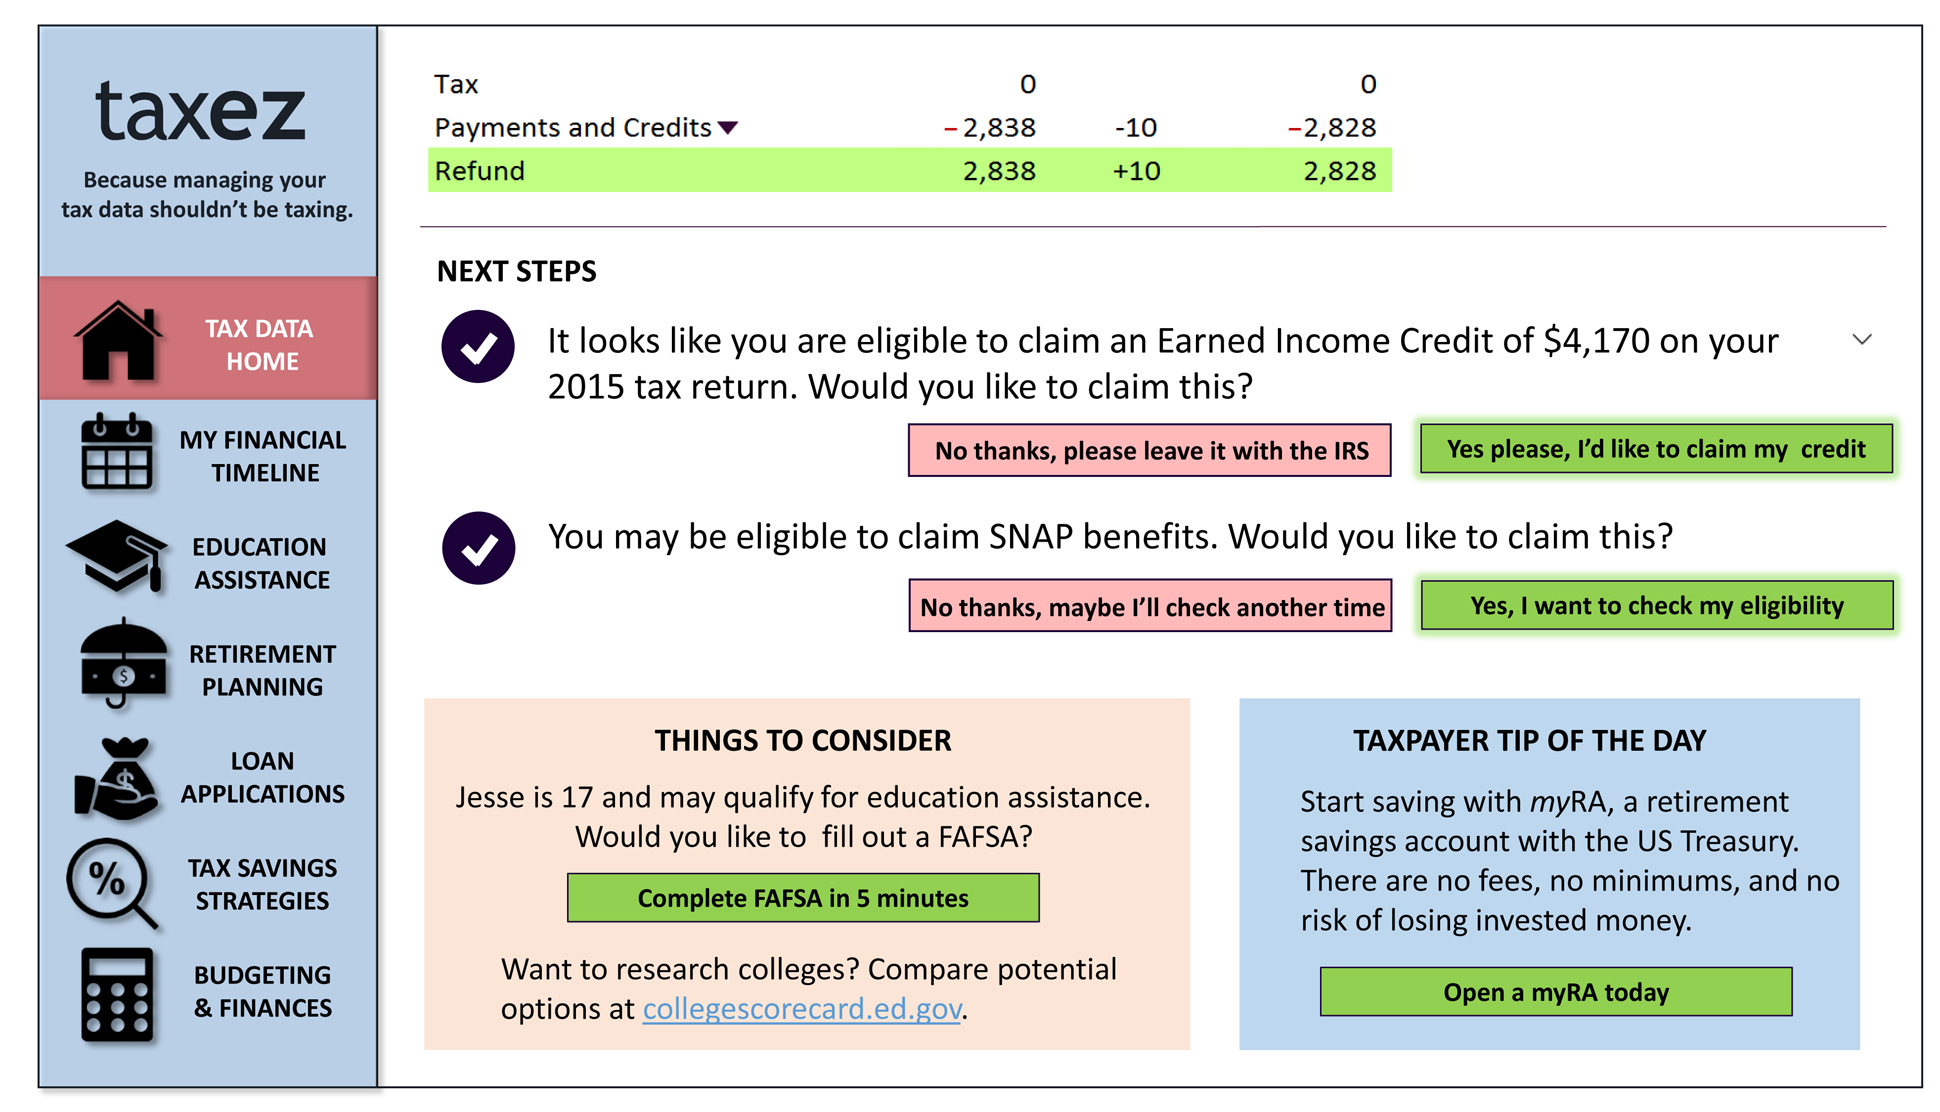 A page from a tax design challenge submission. This page shows next steps after filing a tax return.